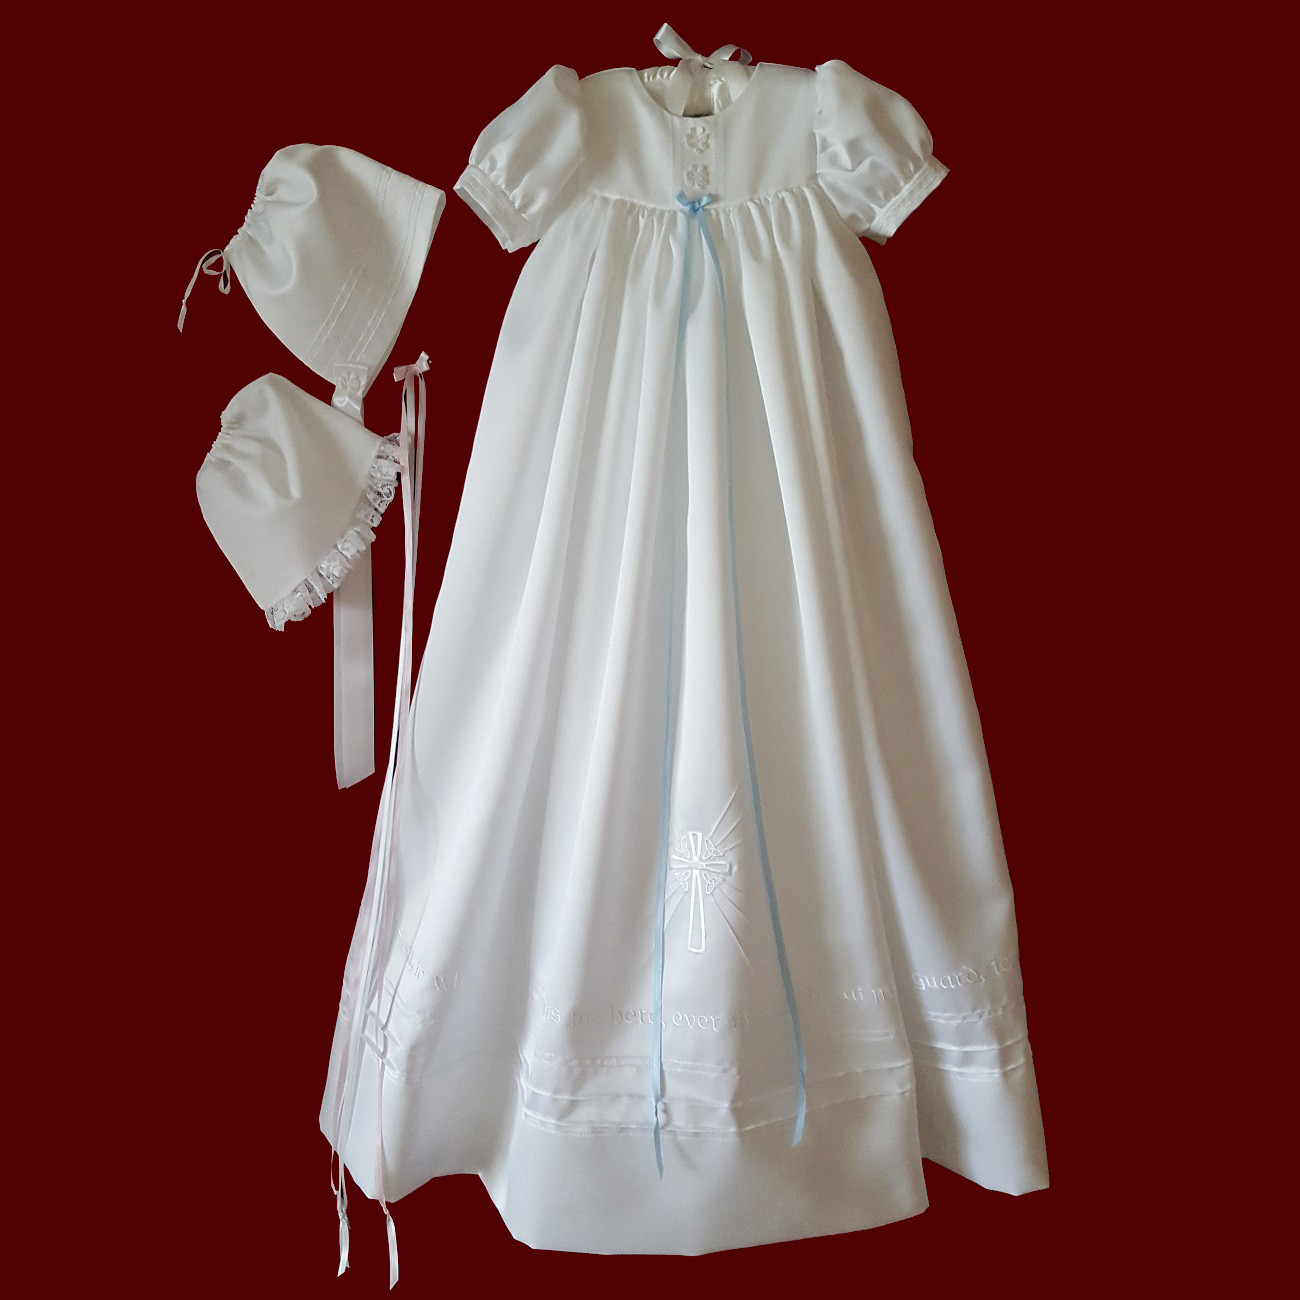 Guardian Angel Unisex Christening Gown, Personalized Slip & Girl/Boy Hat